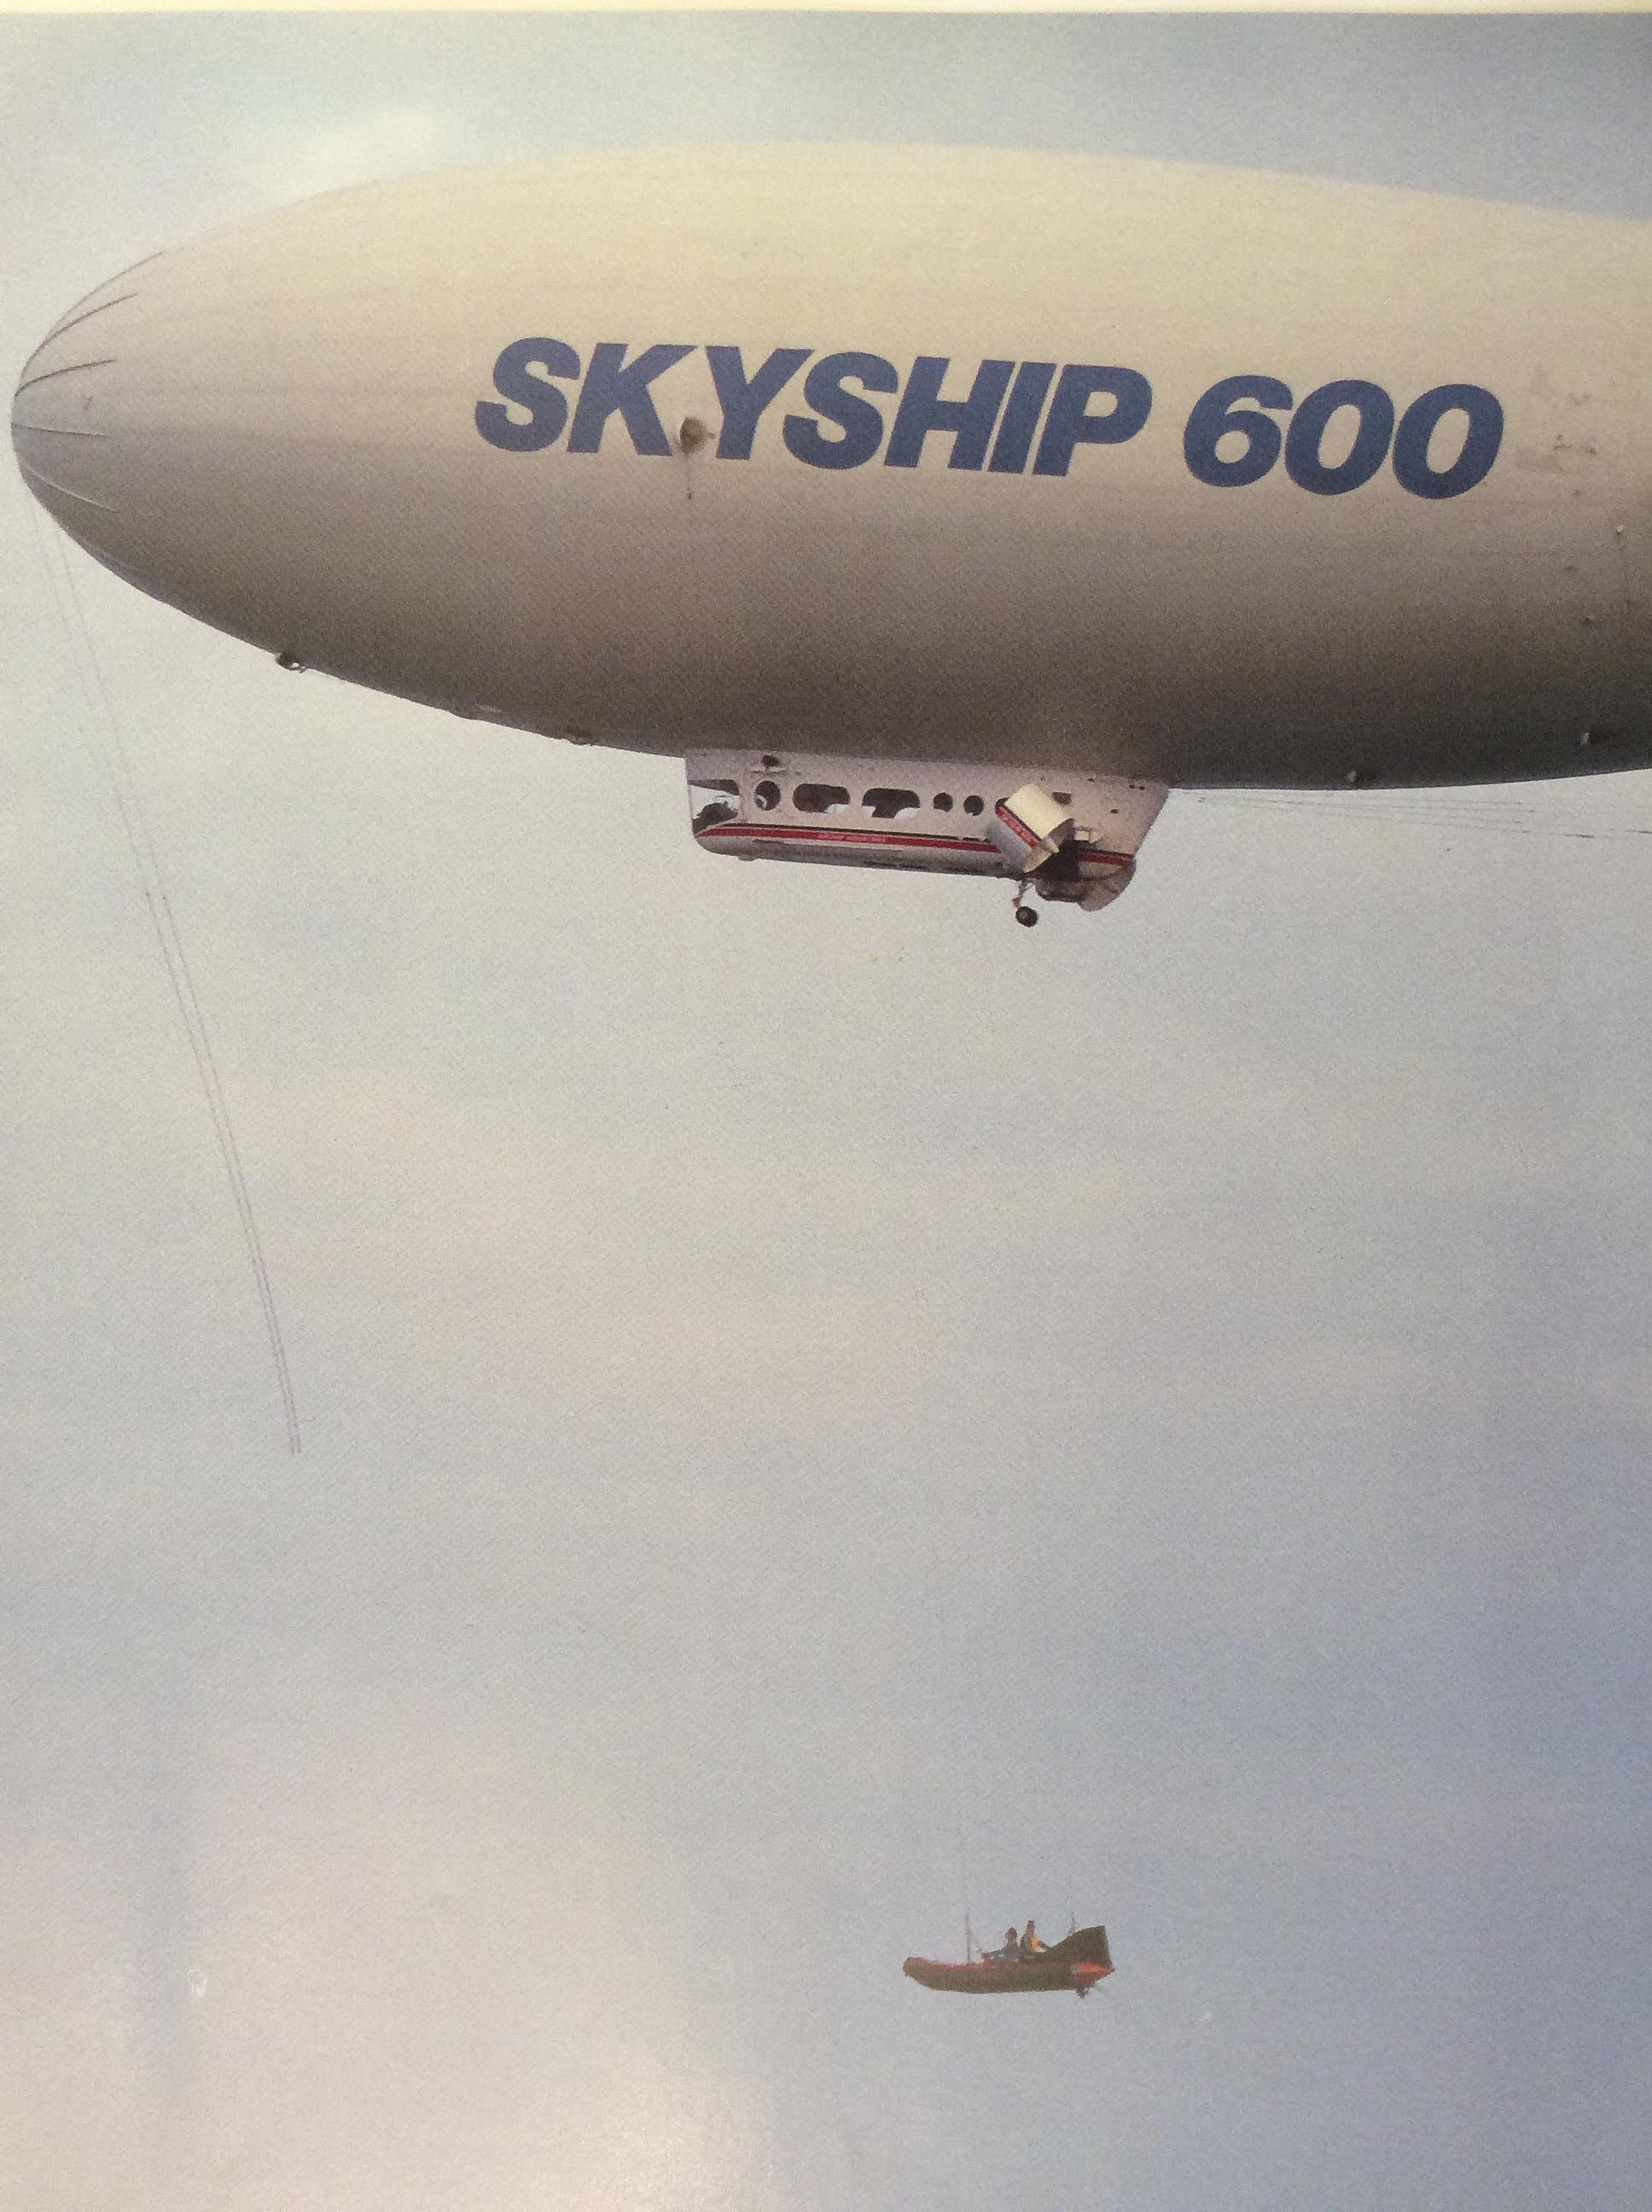 Airships At Cardington furthermore Airship skyship in addition 6057659 likewise Zorin moreover SS 600 Photo Gallery. on airship industries skyship 600